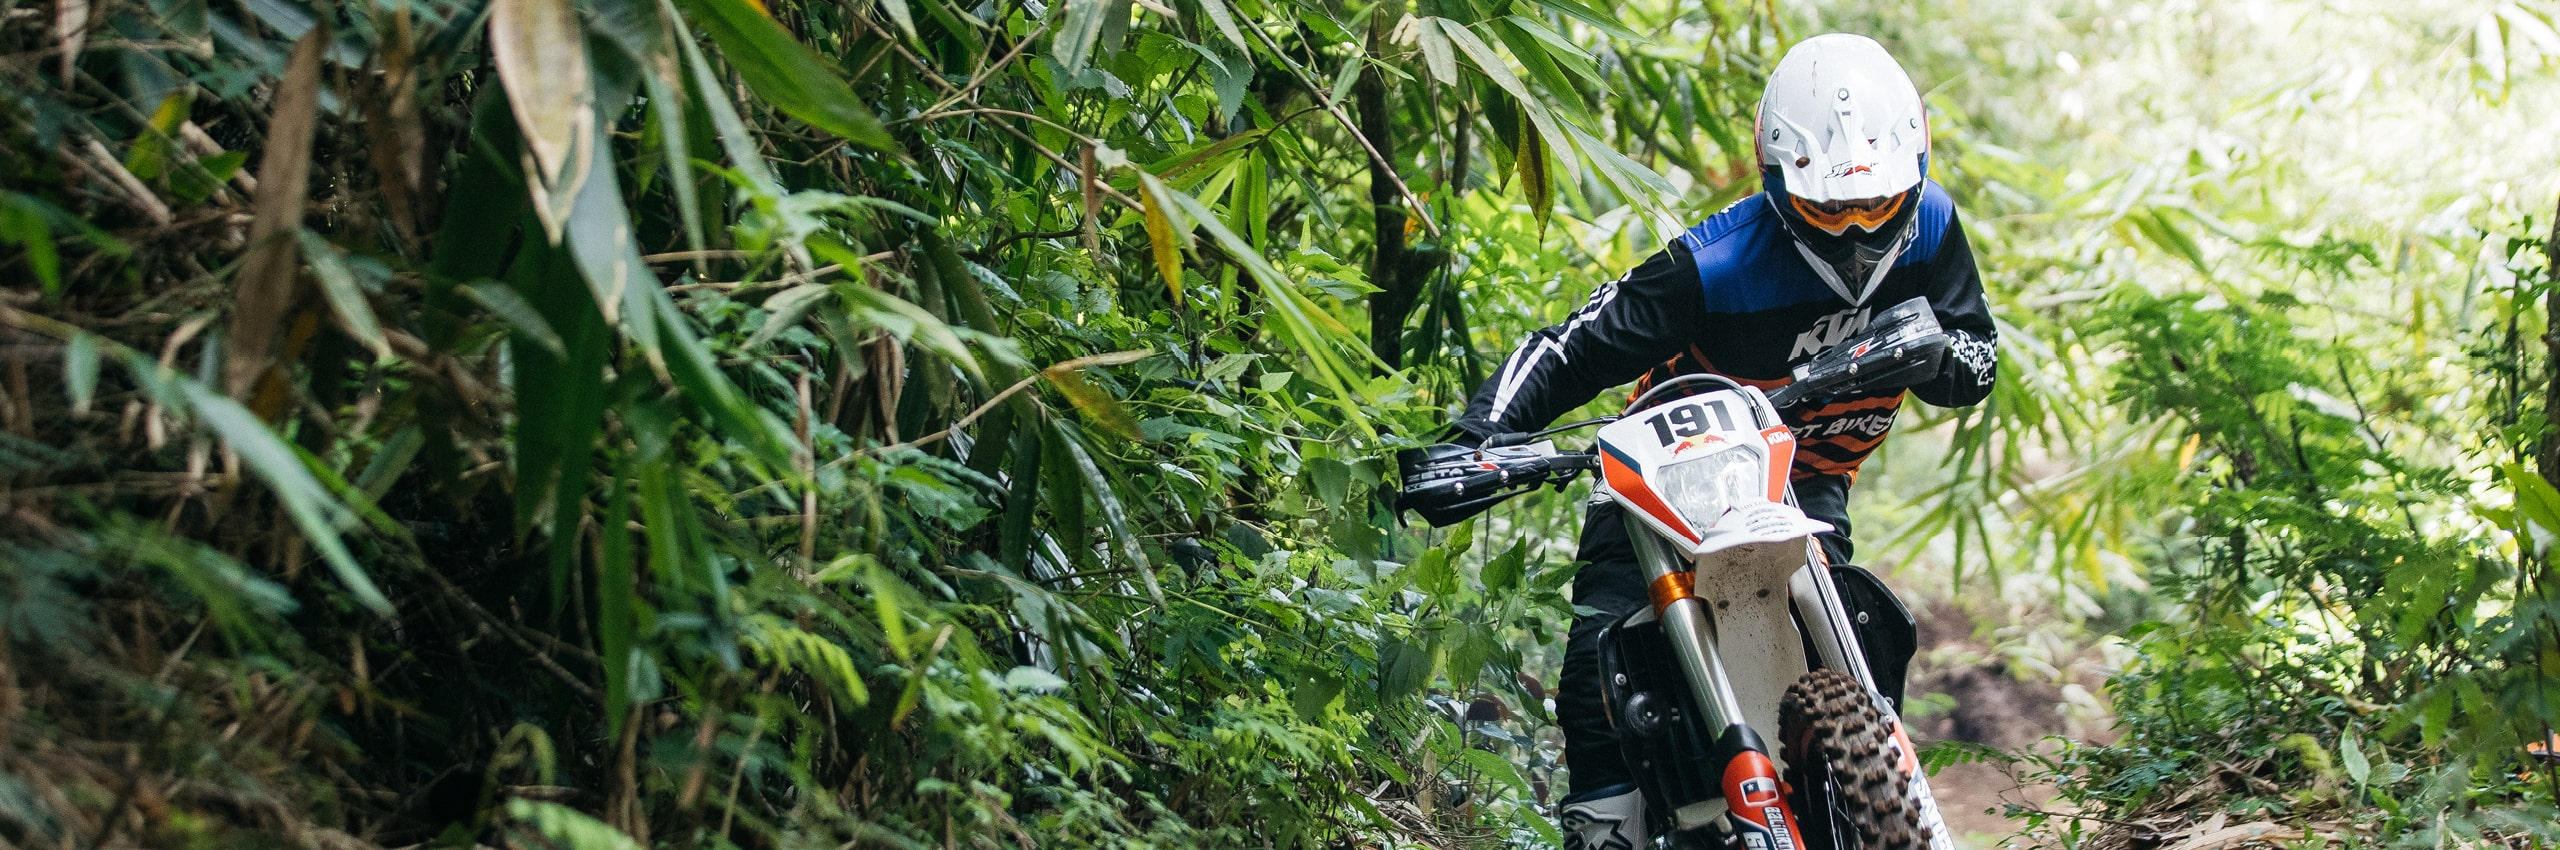 Bali_Dirt_Bikes_Tabanan_Jungle_Slider5